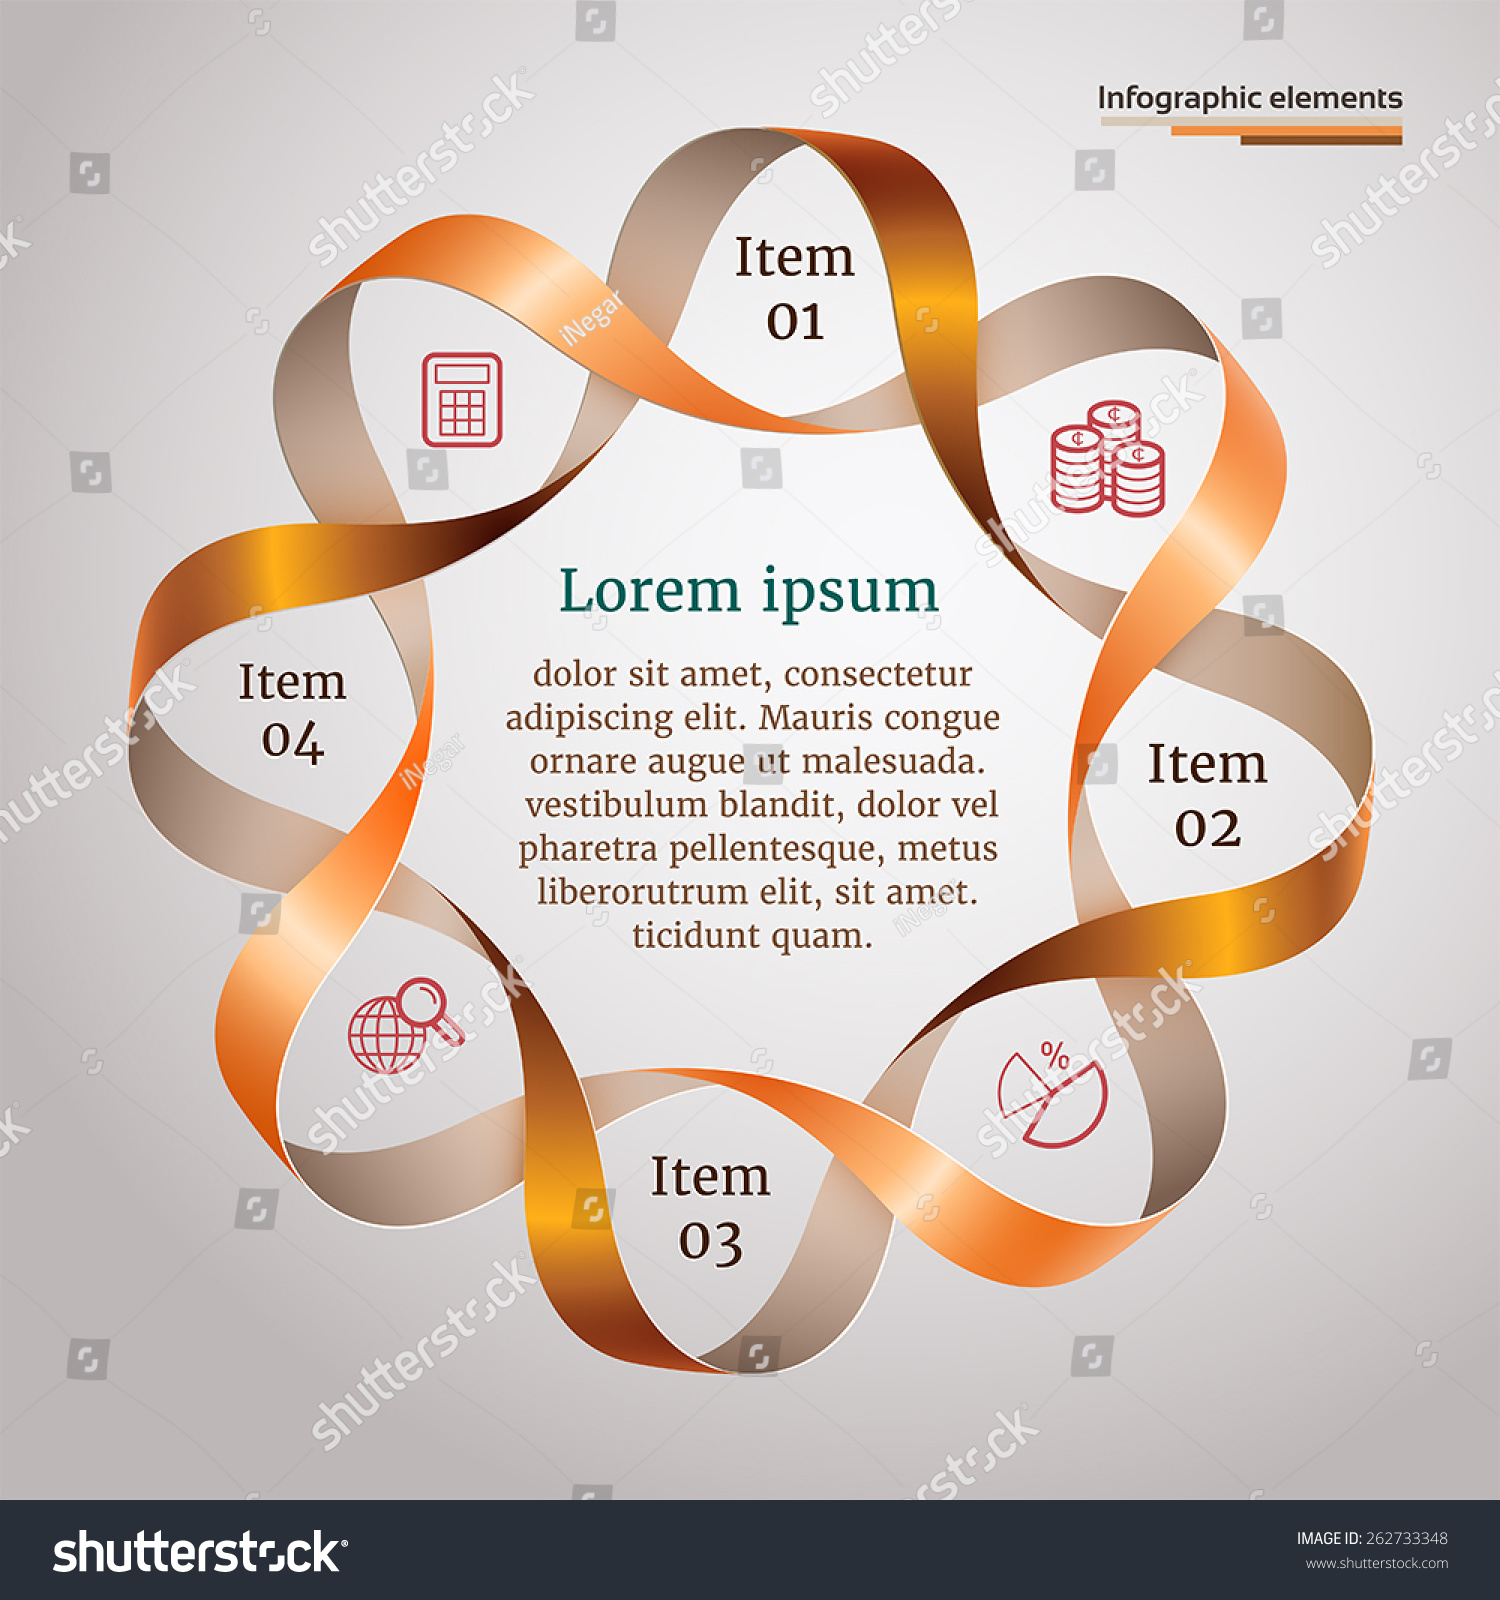 Round Infographic Twisted Shape 3d Ribbons Stock Vector ... - photo#48